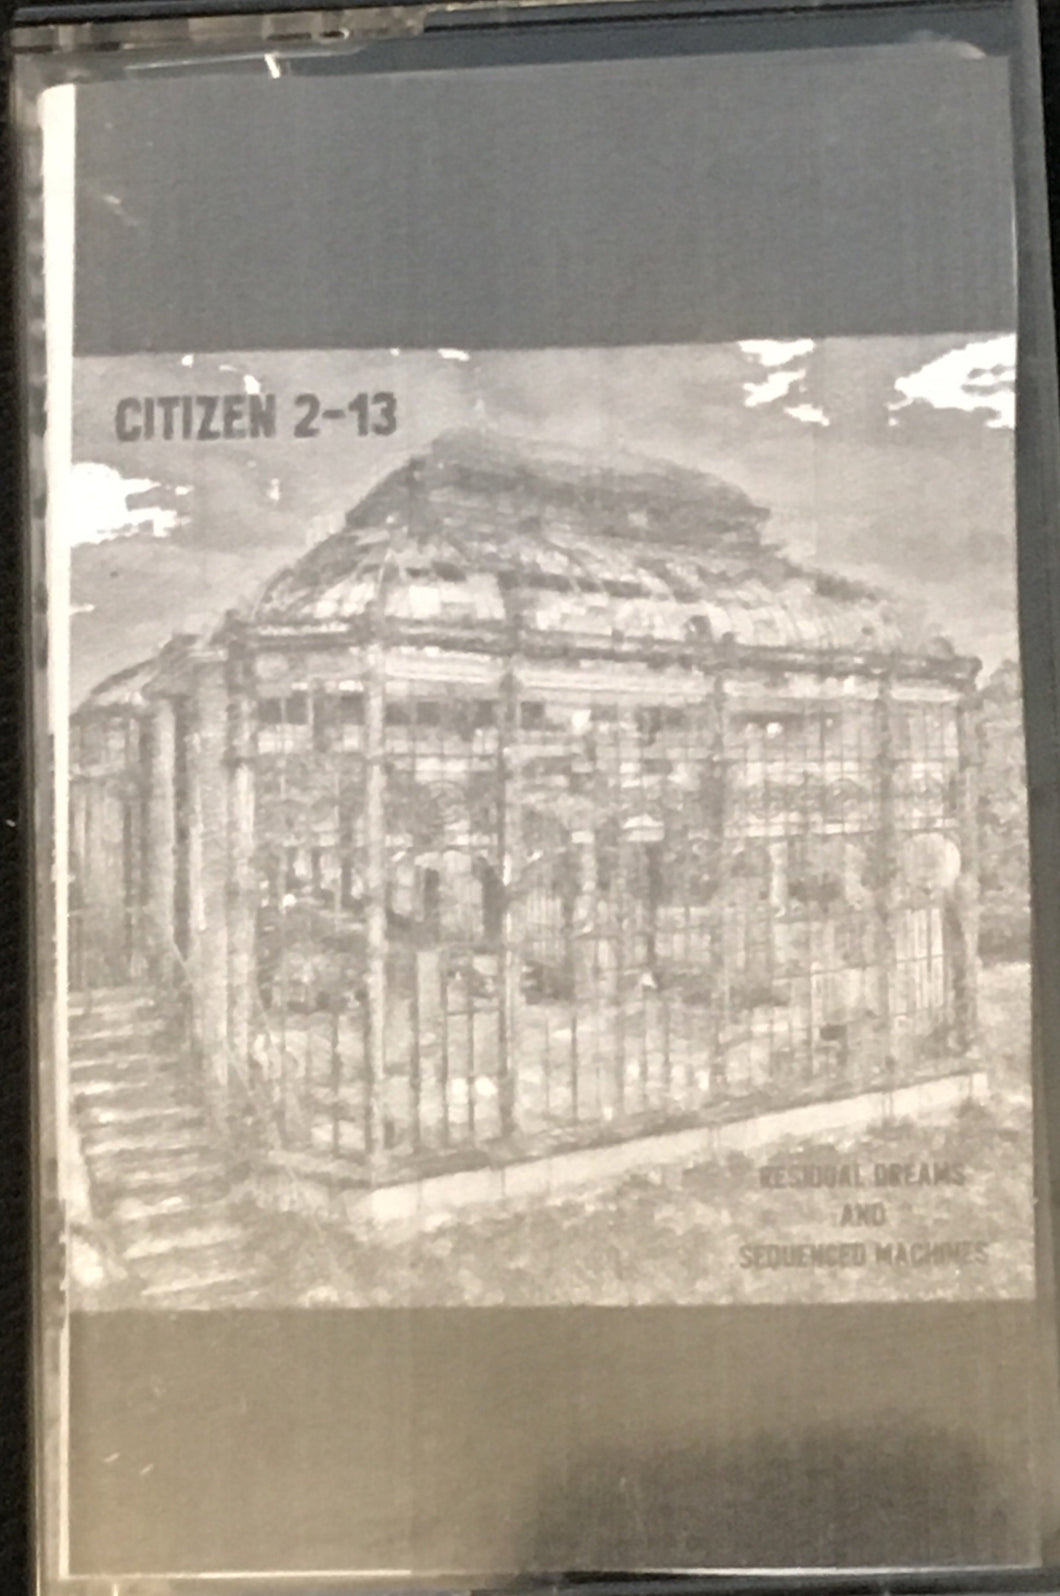 Citizen 2-13 Residual Dreams and Sequenced Machines NEW Cassette